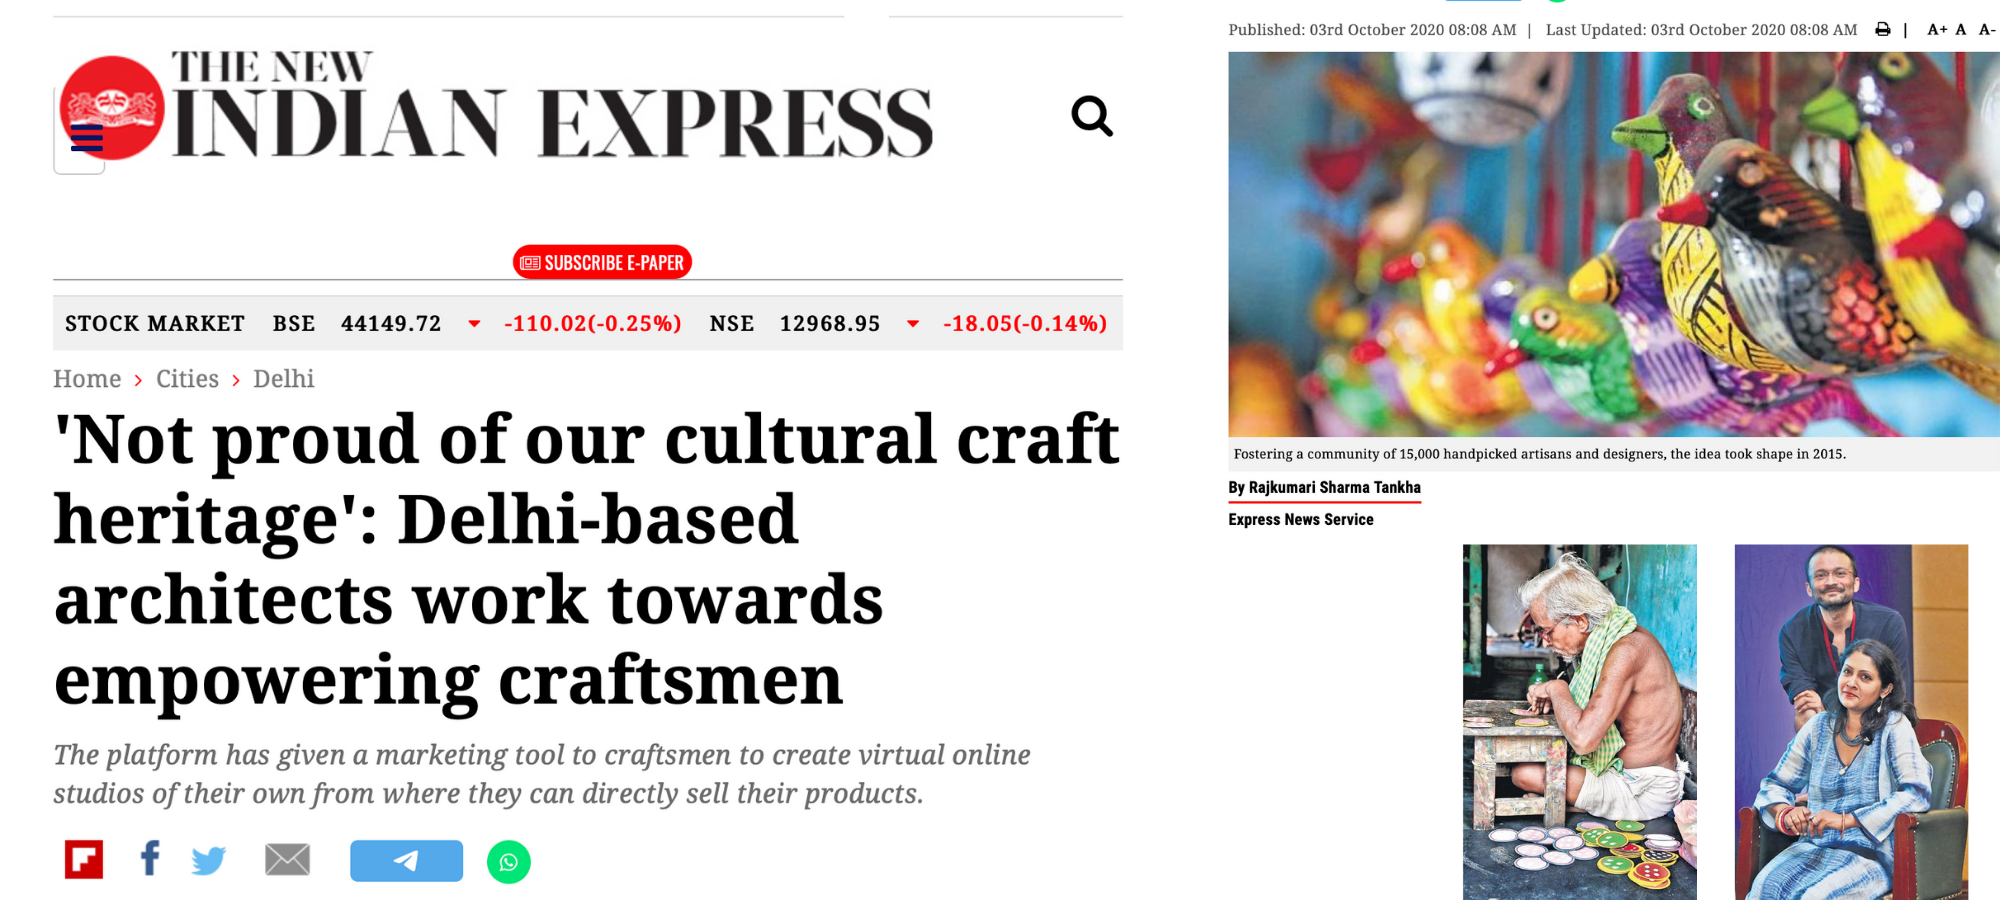 media the new indian express 031020